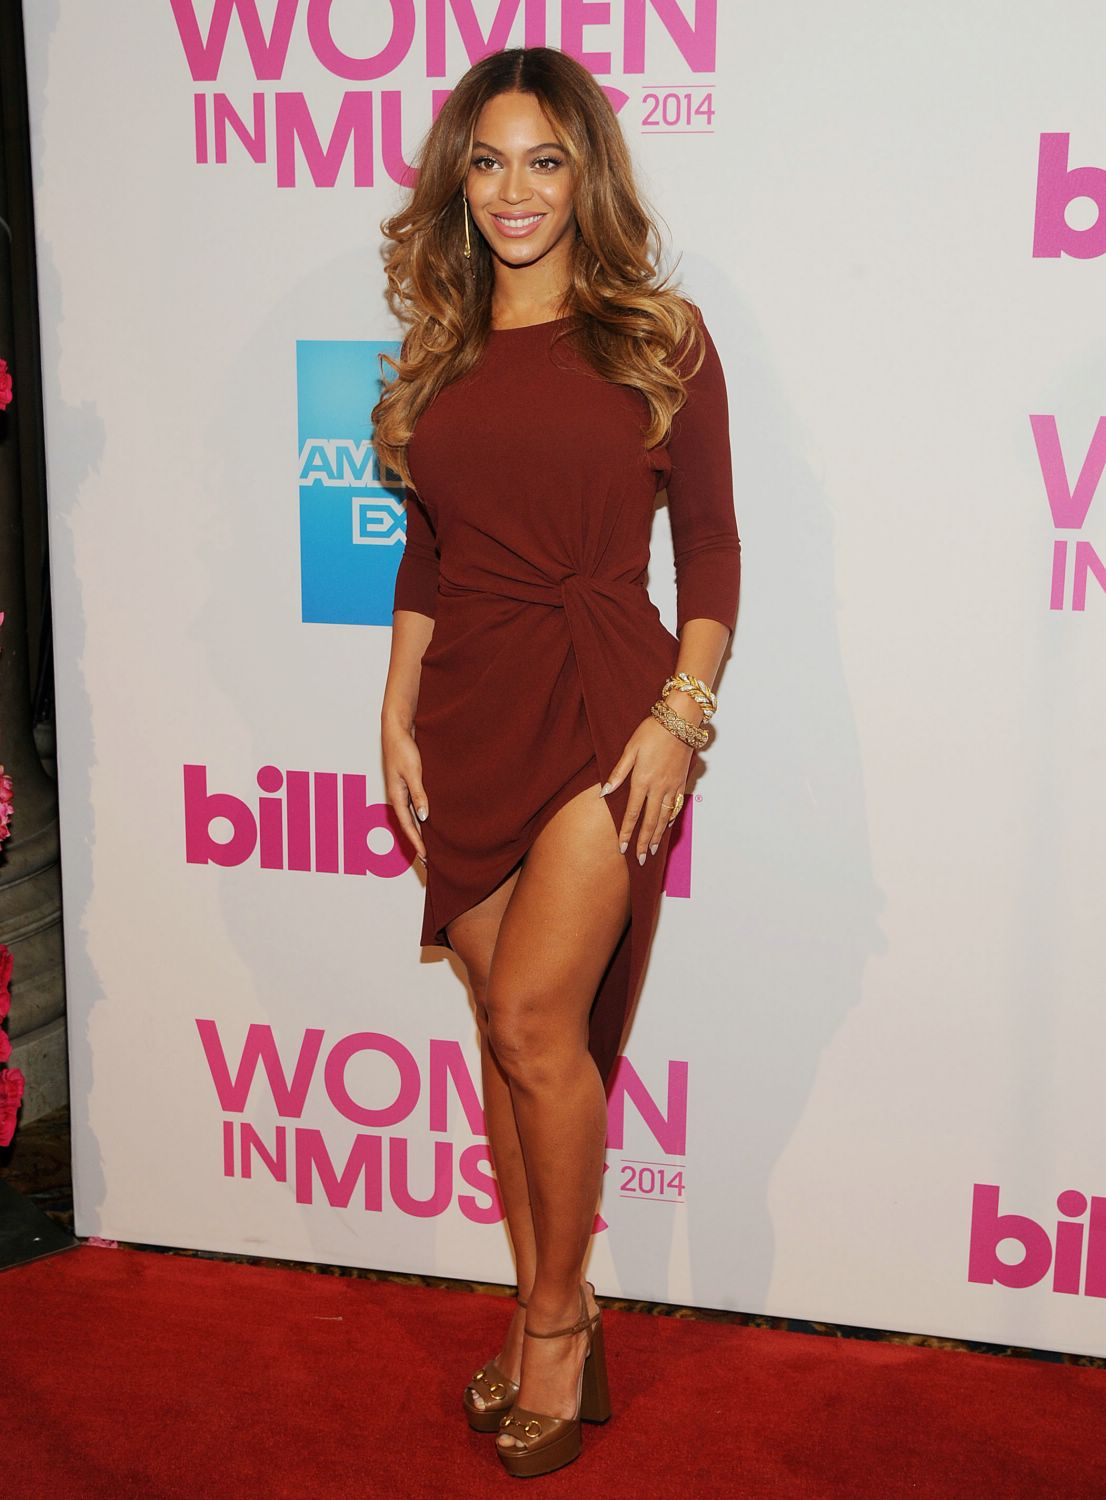 Beyonce-billboard--women-in-music-luncheon.jpg